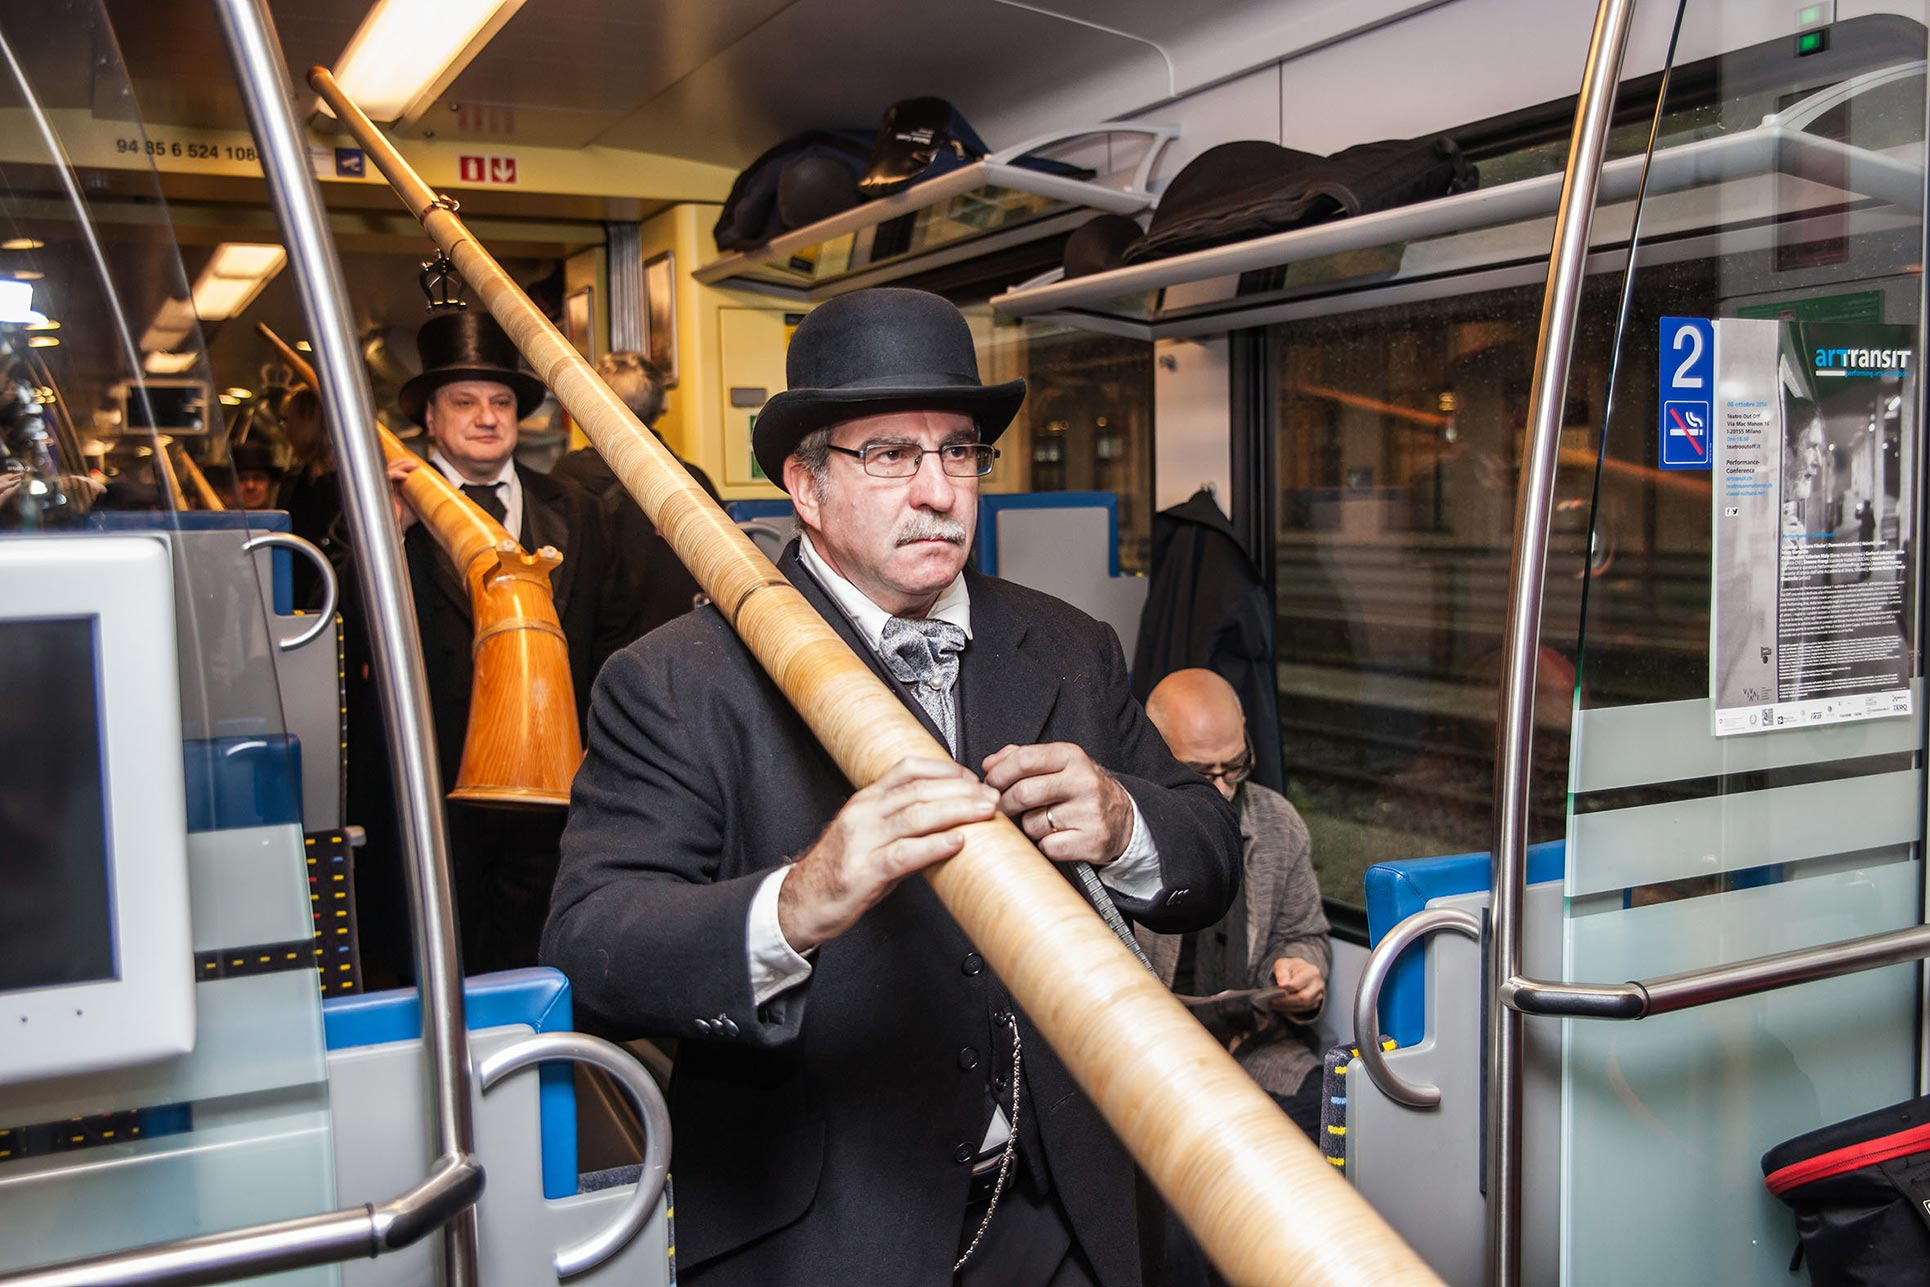 The alphorn players in the Performance Train (Photo: Tania Volobueva)